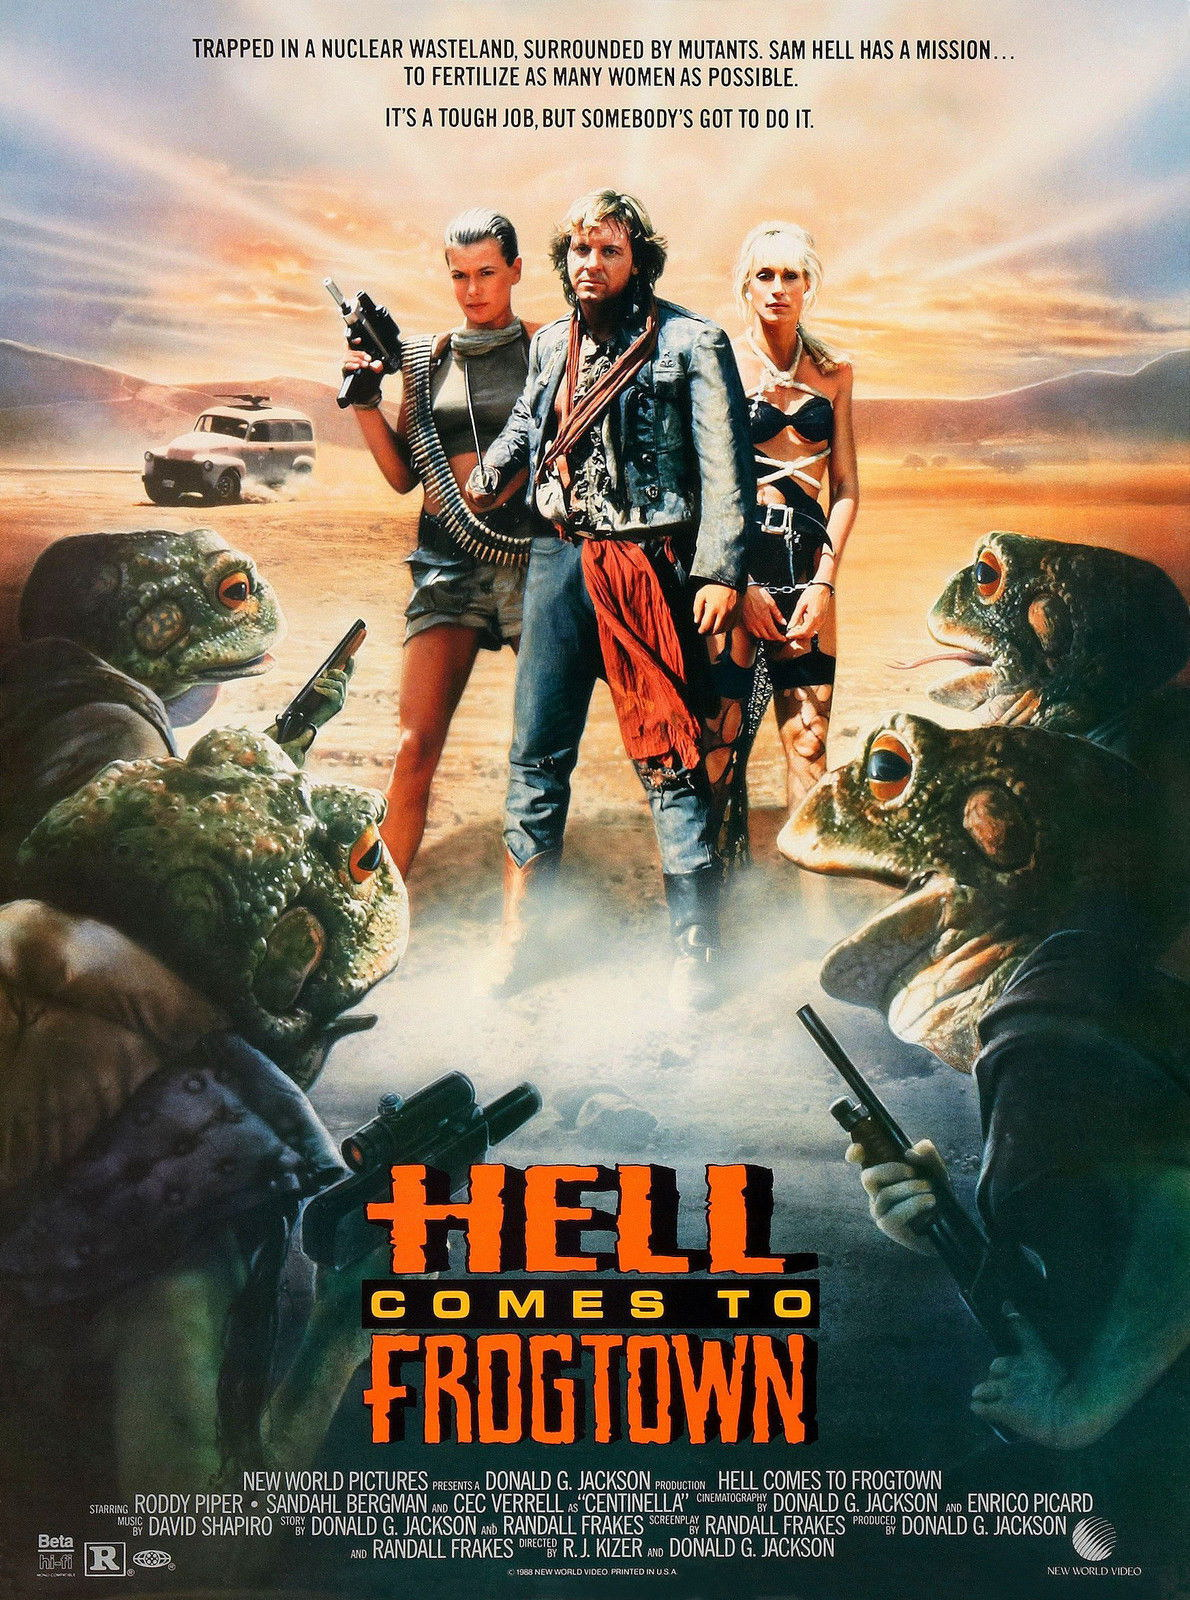 72522-HELL-COMES-TO-FROGTOWN-Sci-Fi-Rowdy-Roddy-Piper-FRAMED-CANVAS-PRINT-Toile